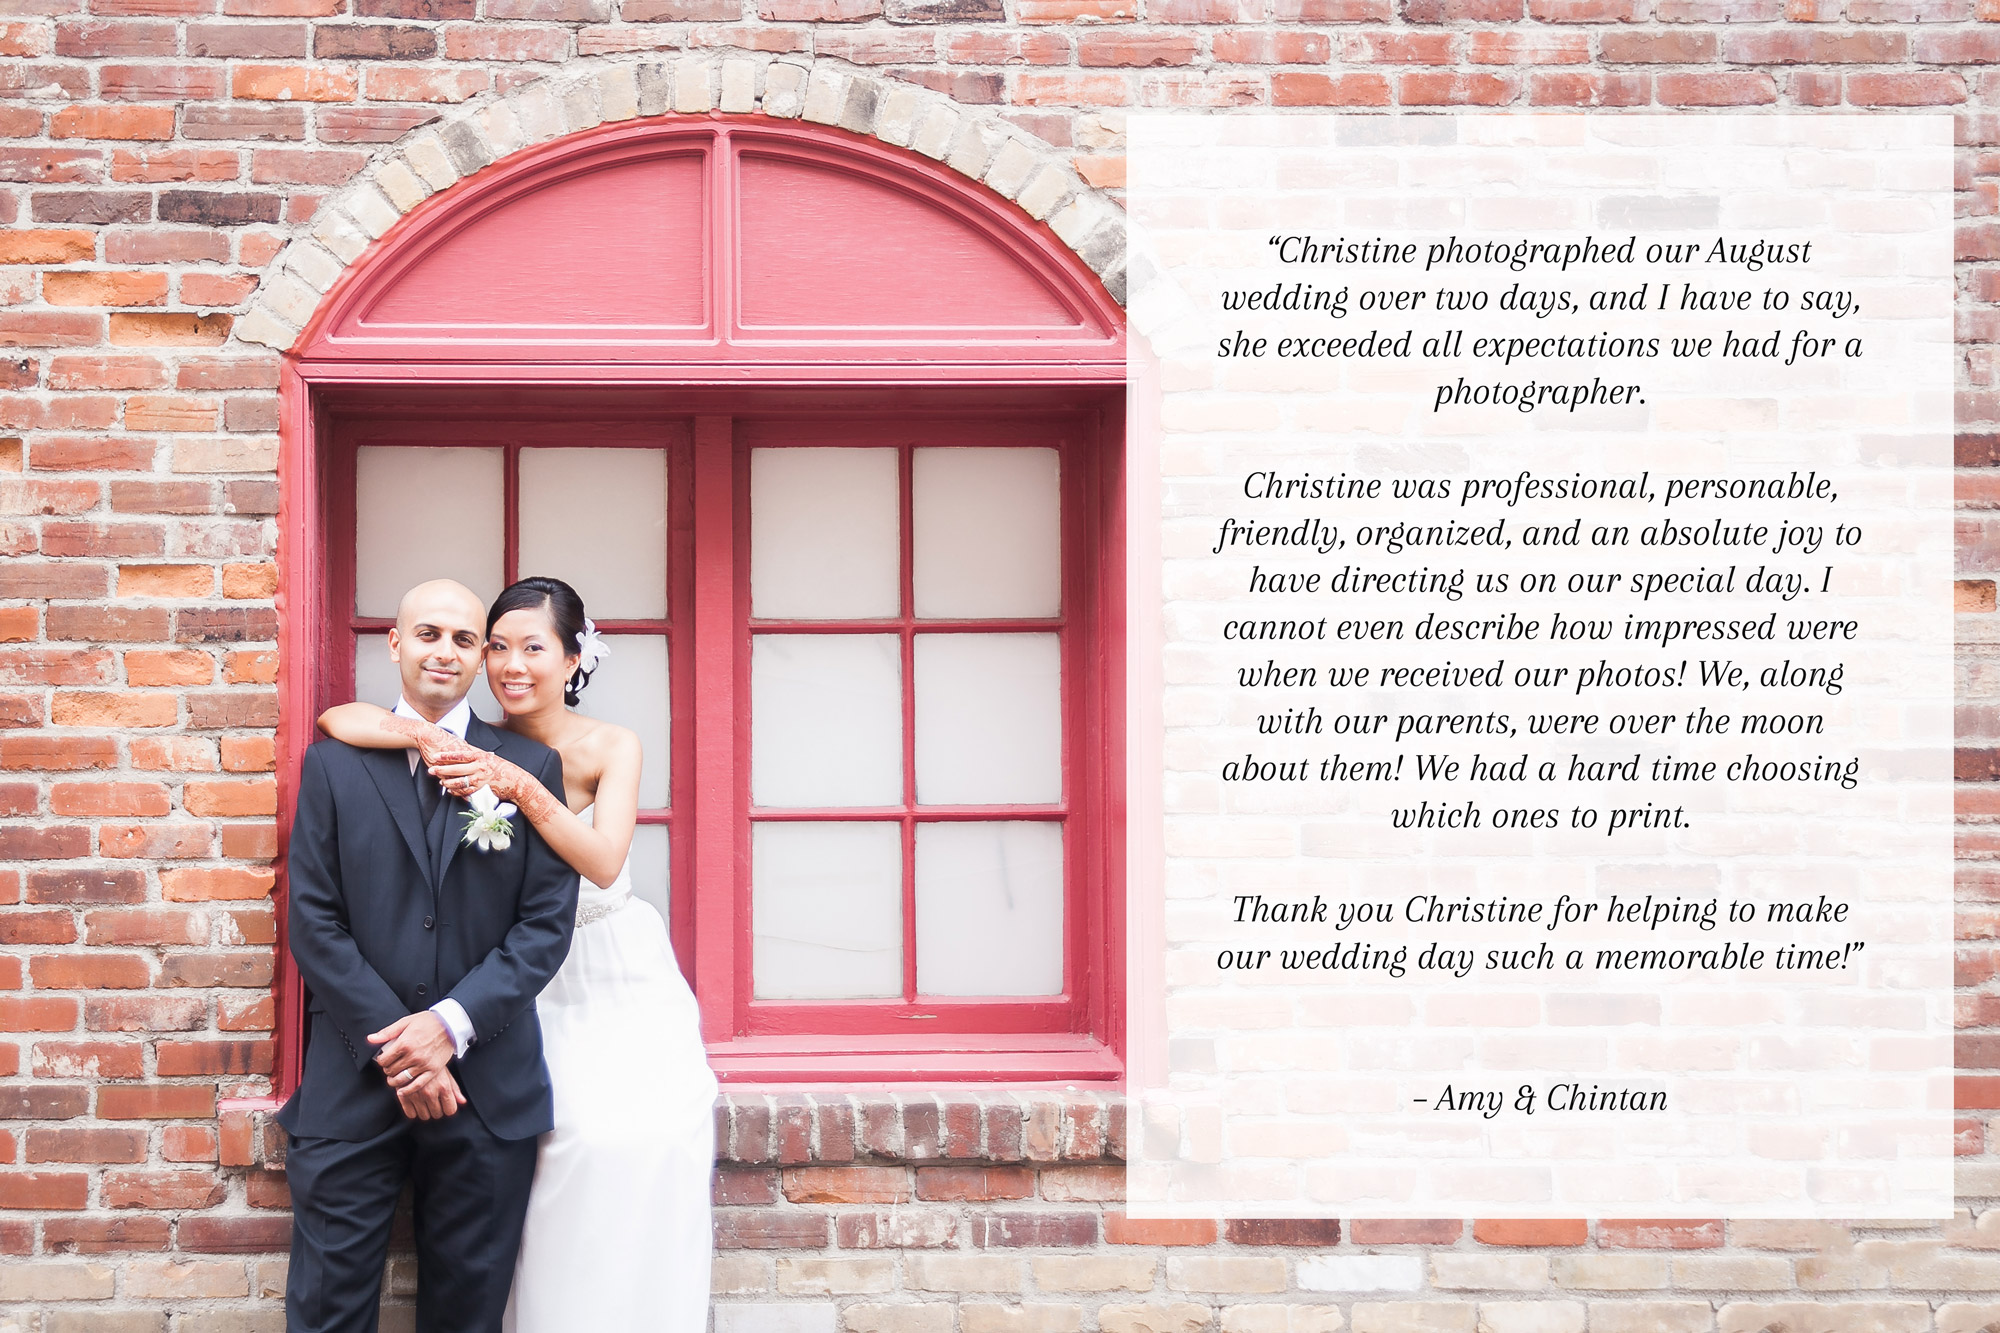 chrilee_photography_wedding_testimonial_rave_AmyChintan2_229